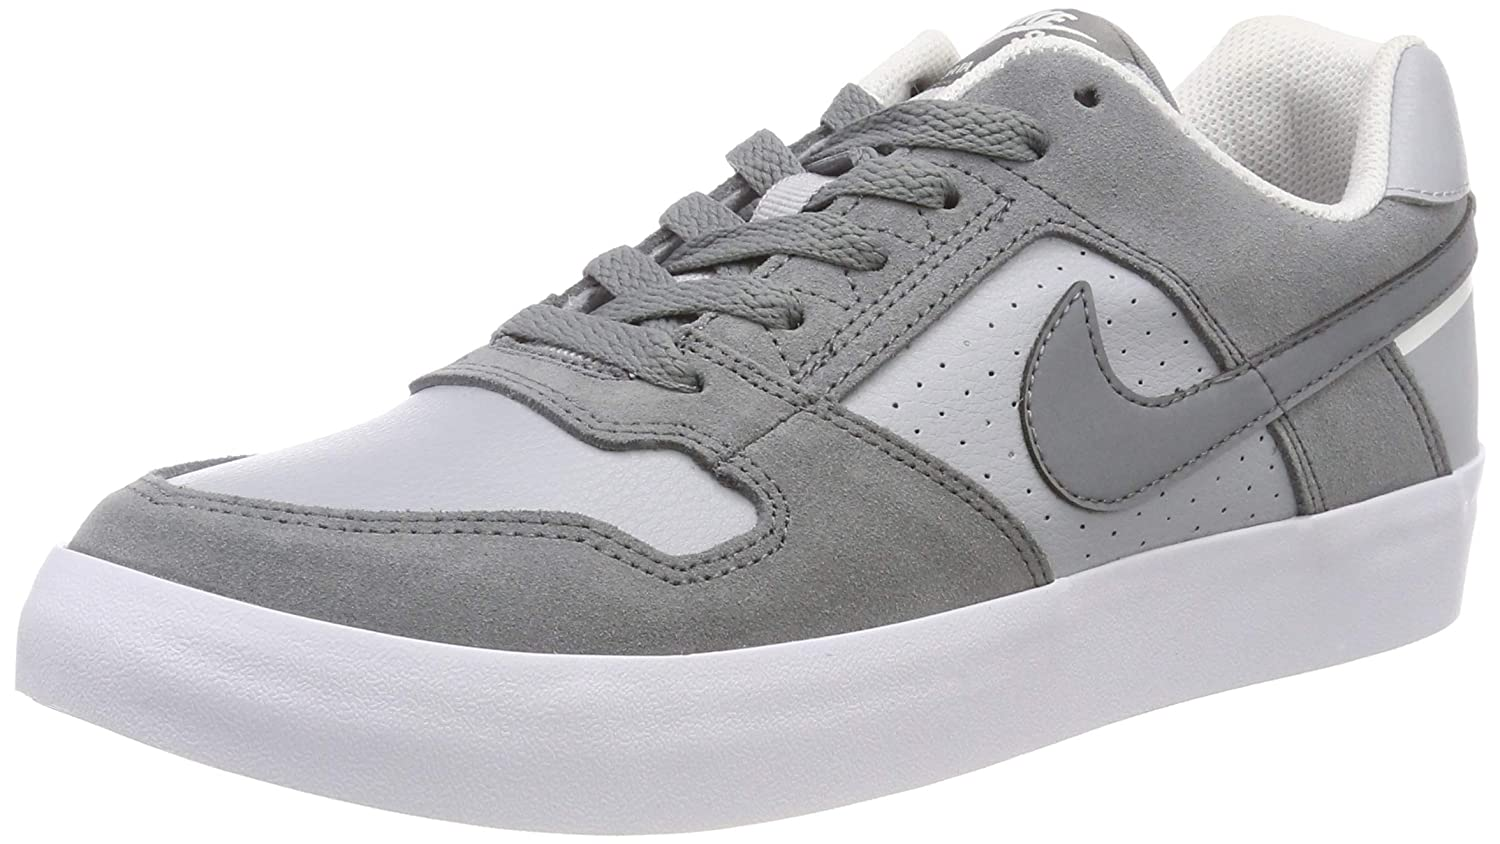 new styles 5419e fea0c Amazon.com  Nike Mens SB Delta Force Vulc Athletic  Sneakers Grey   Skateboarding